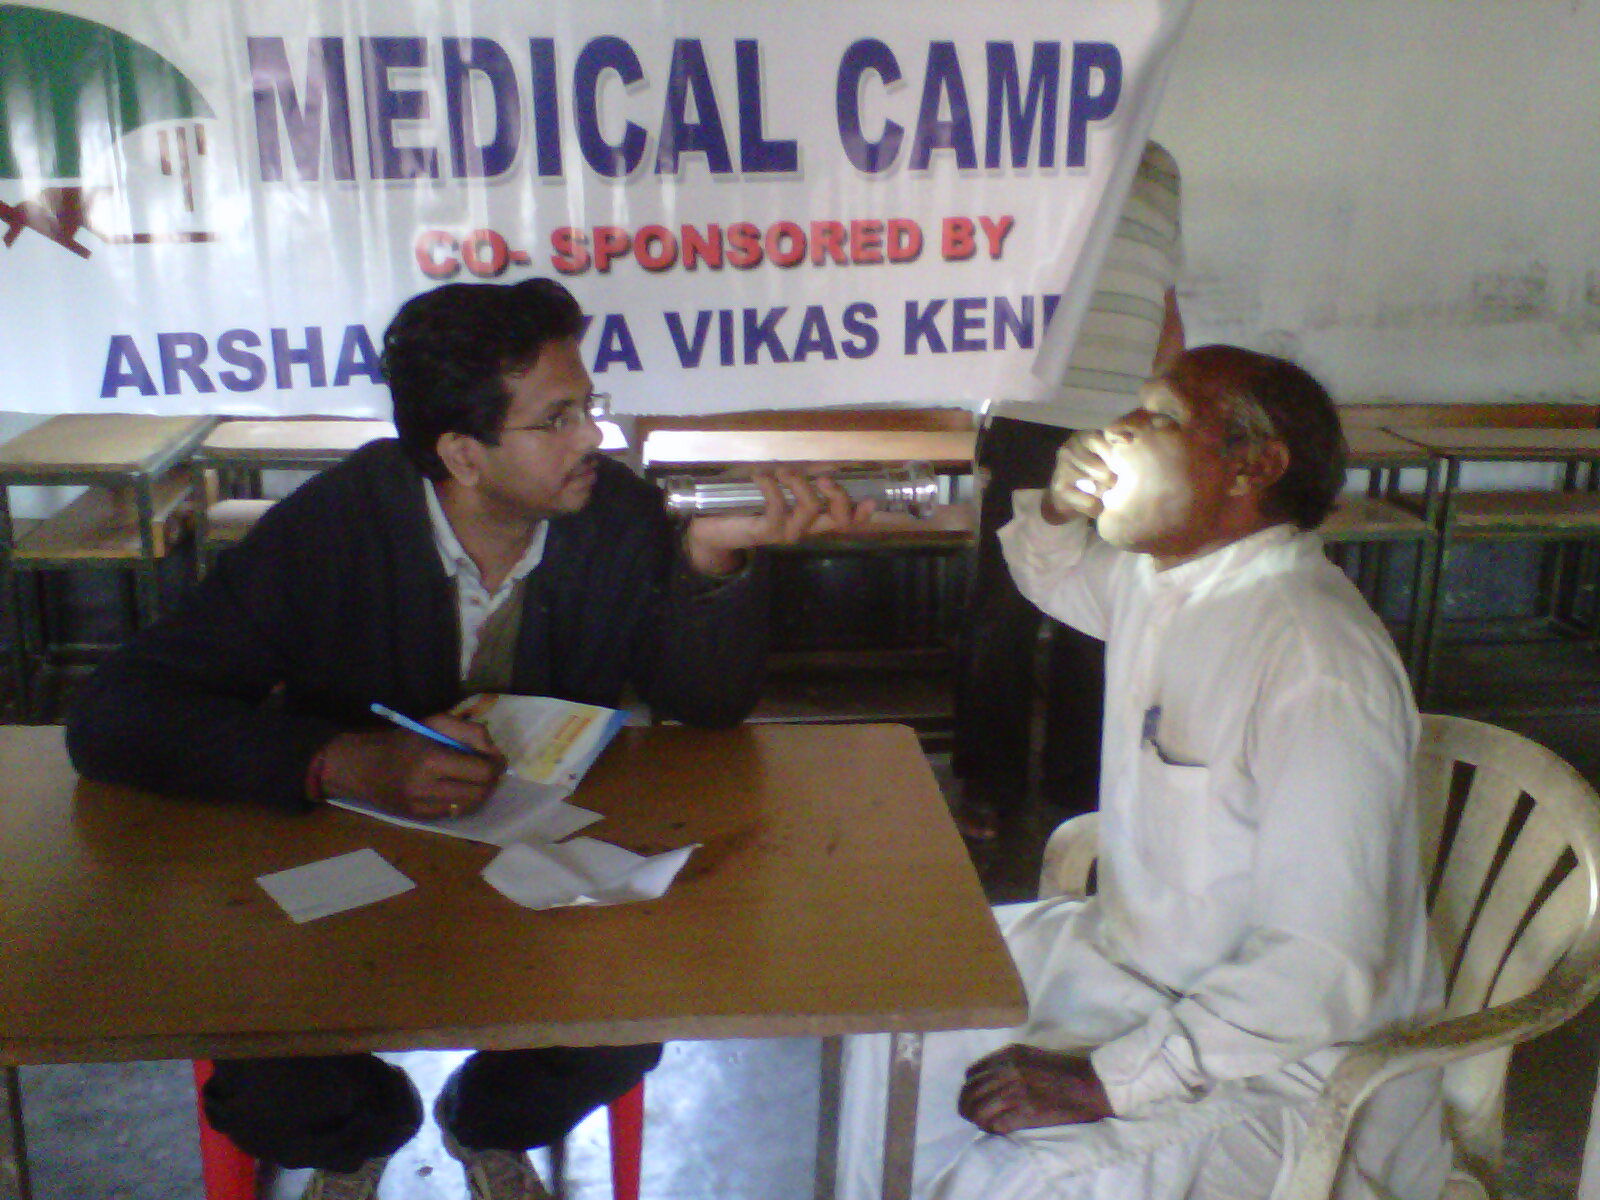 Dr. Abhilash Mohapatra attending to a patient